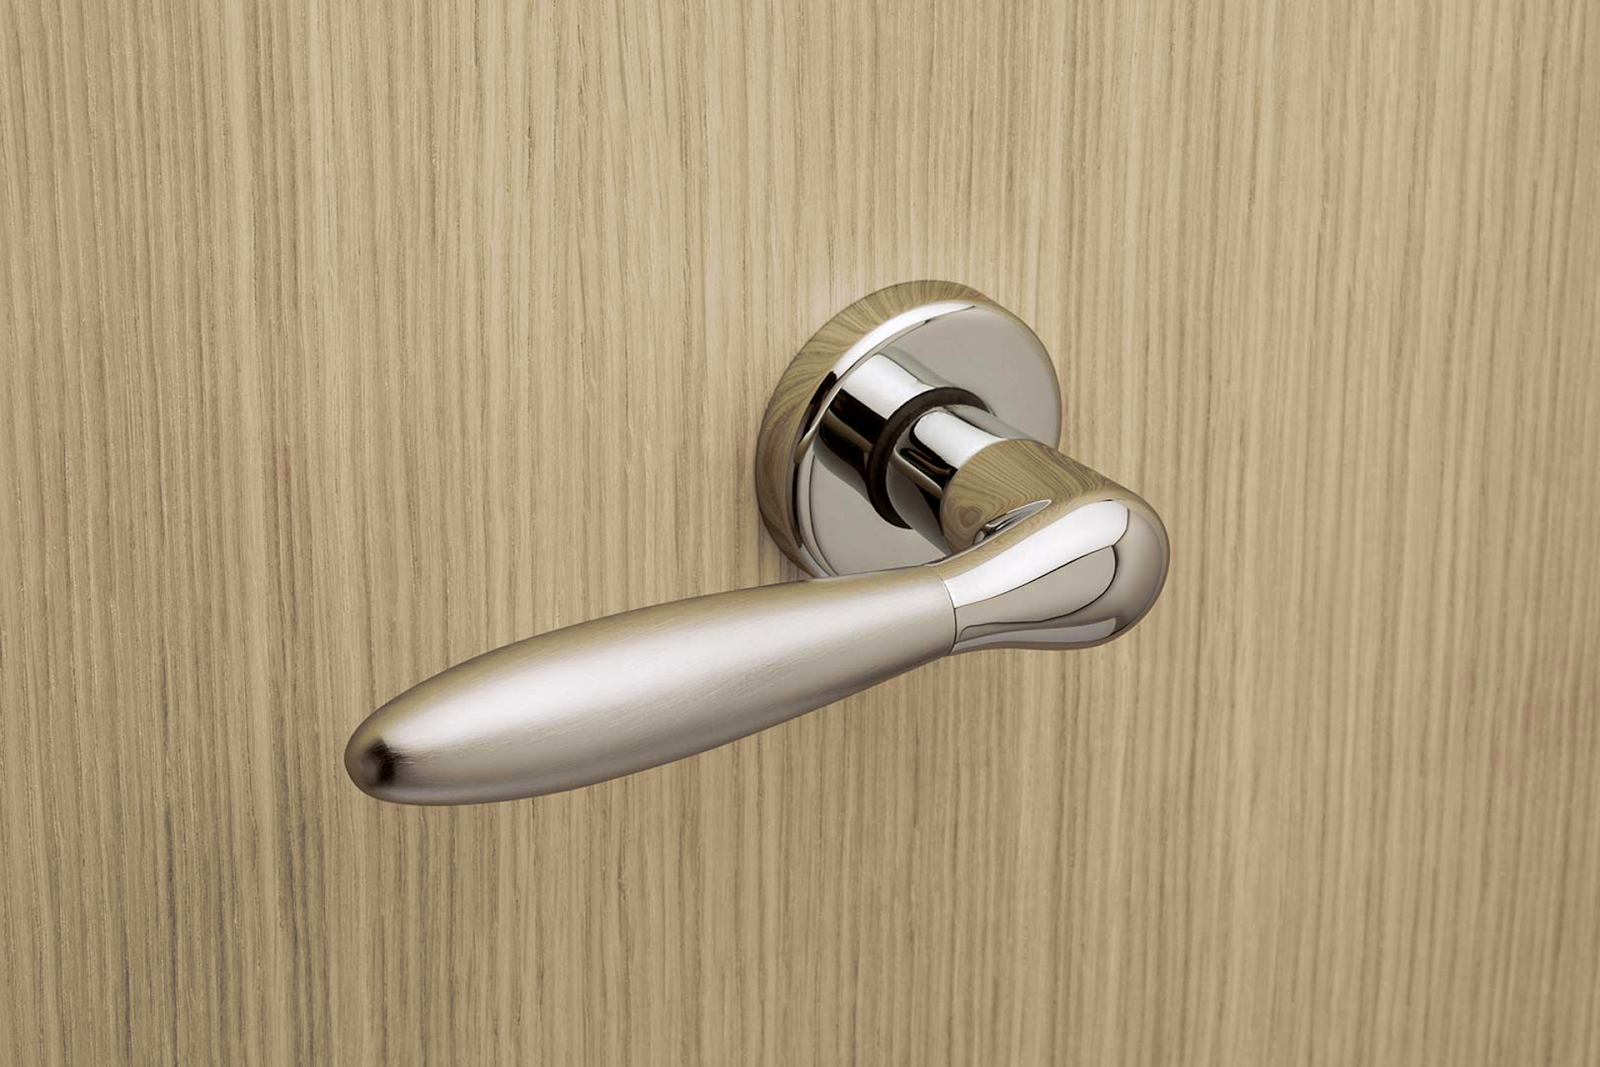 Italy Security Considerations For Bathroom Locking Products